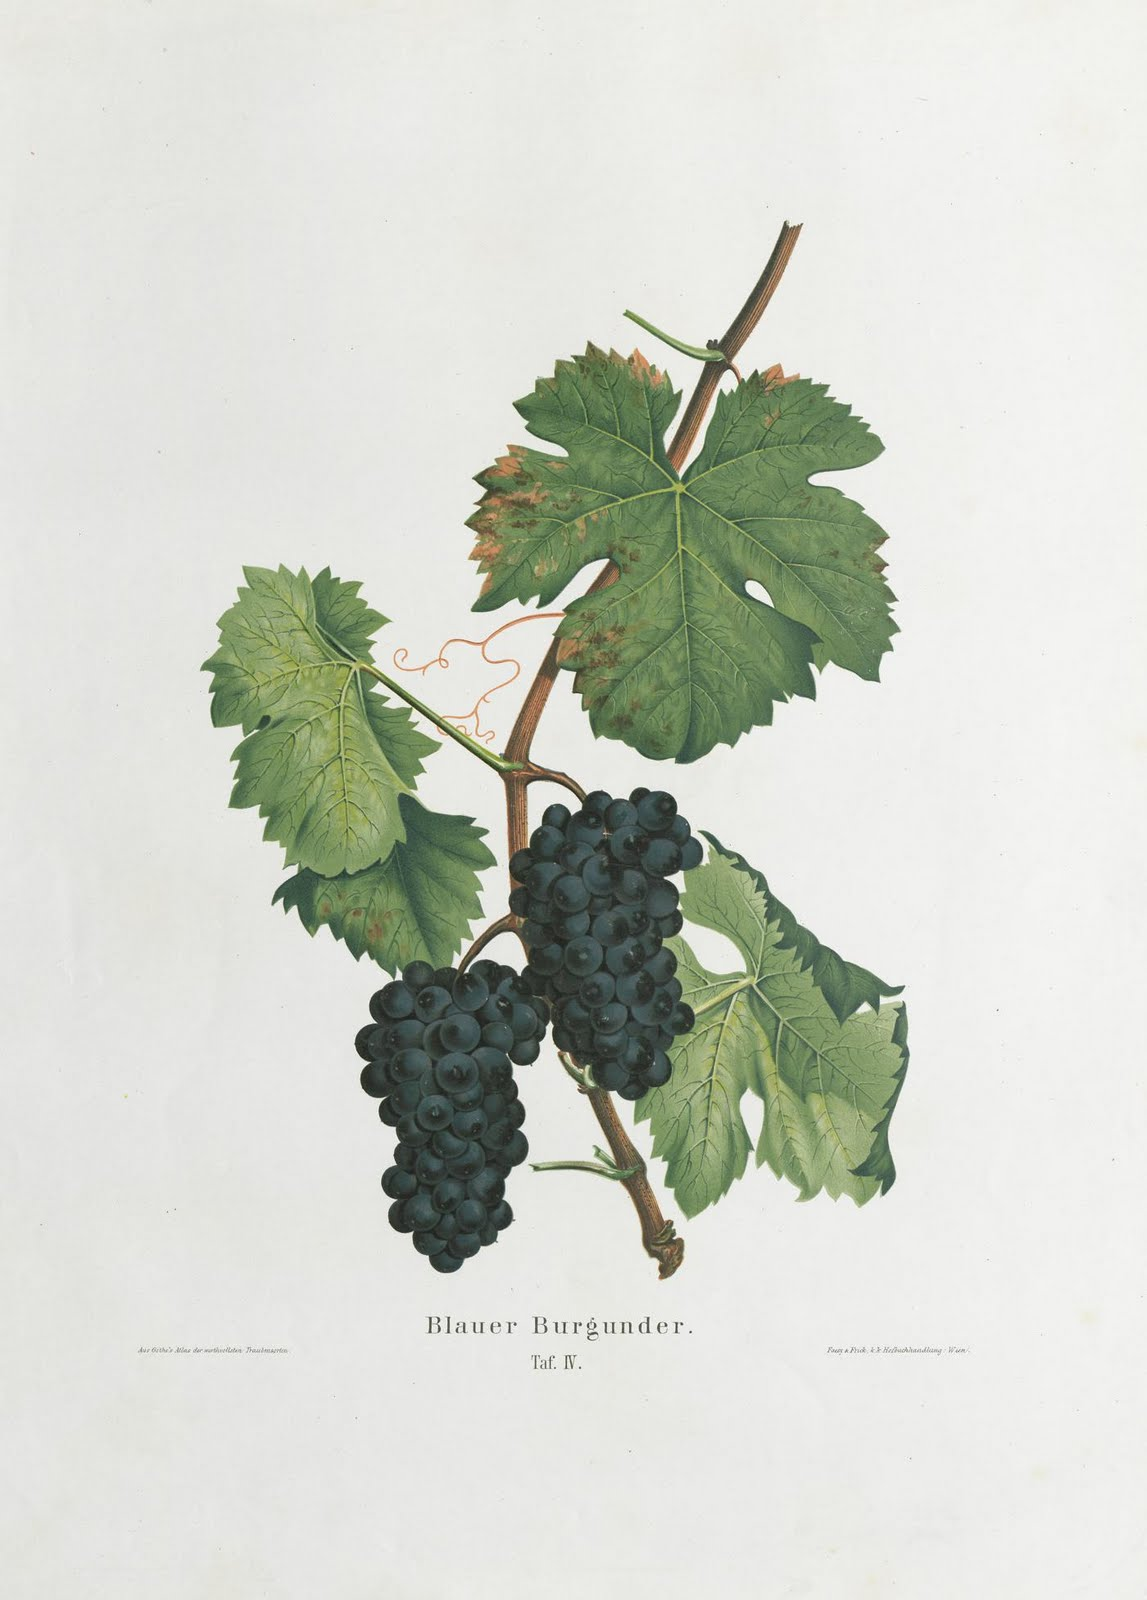 book illustration of a bunch of grapes